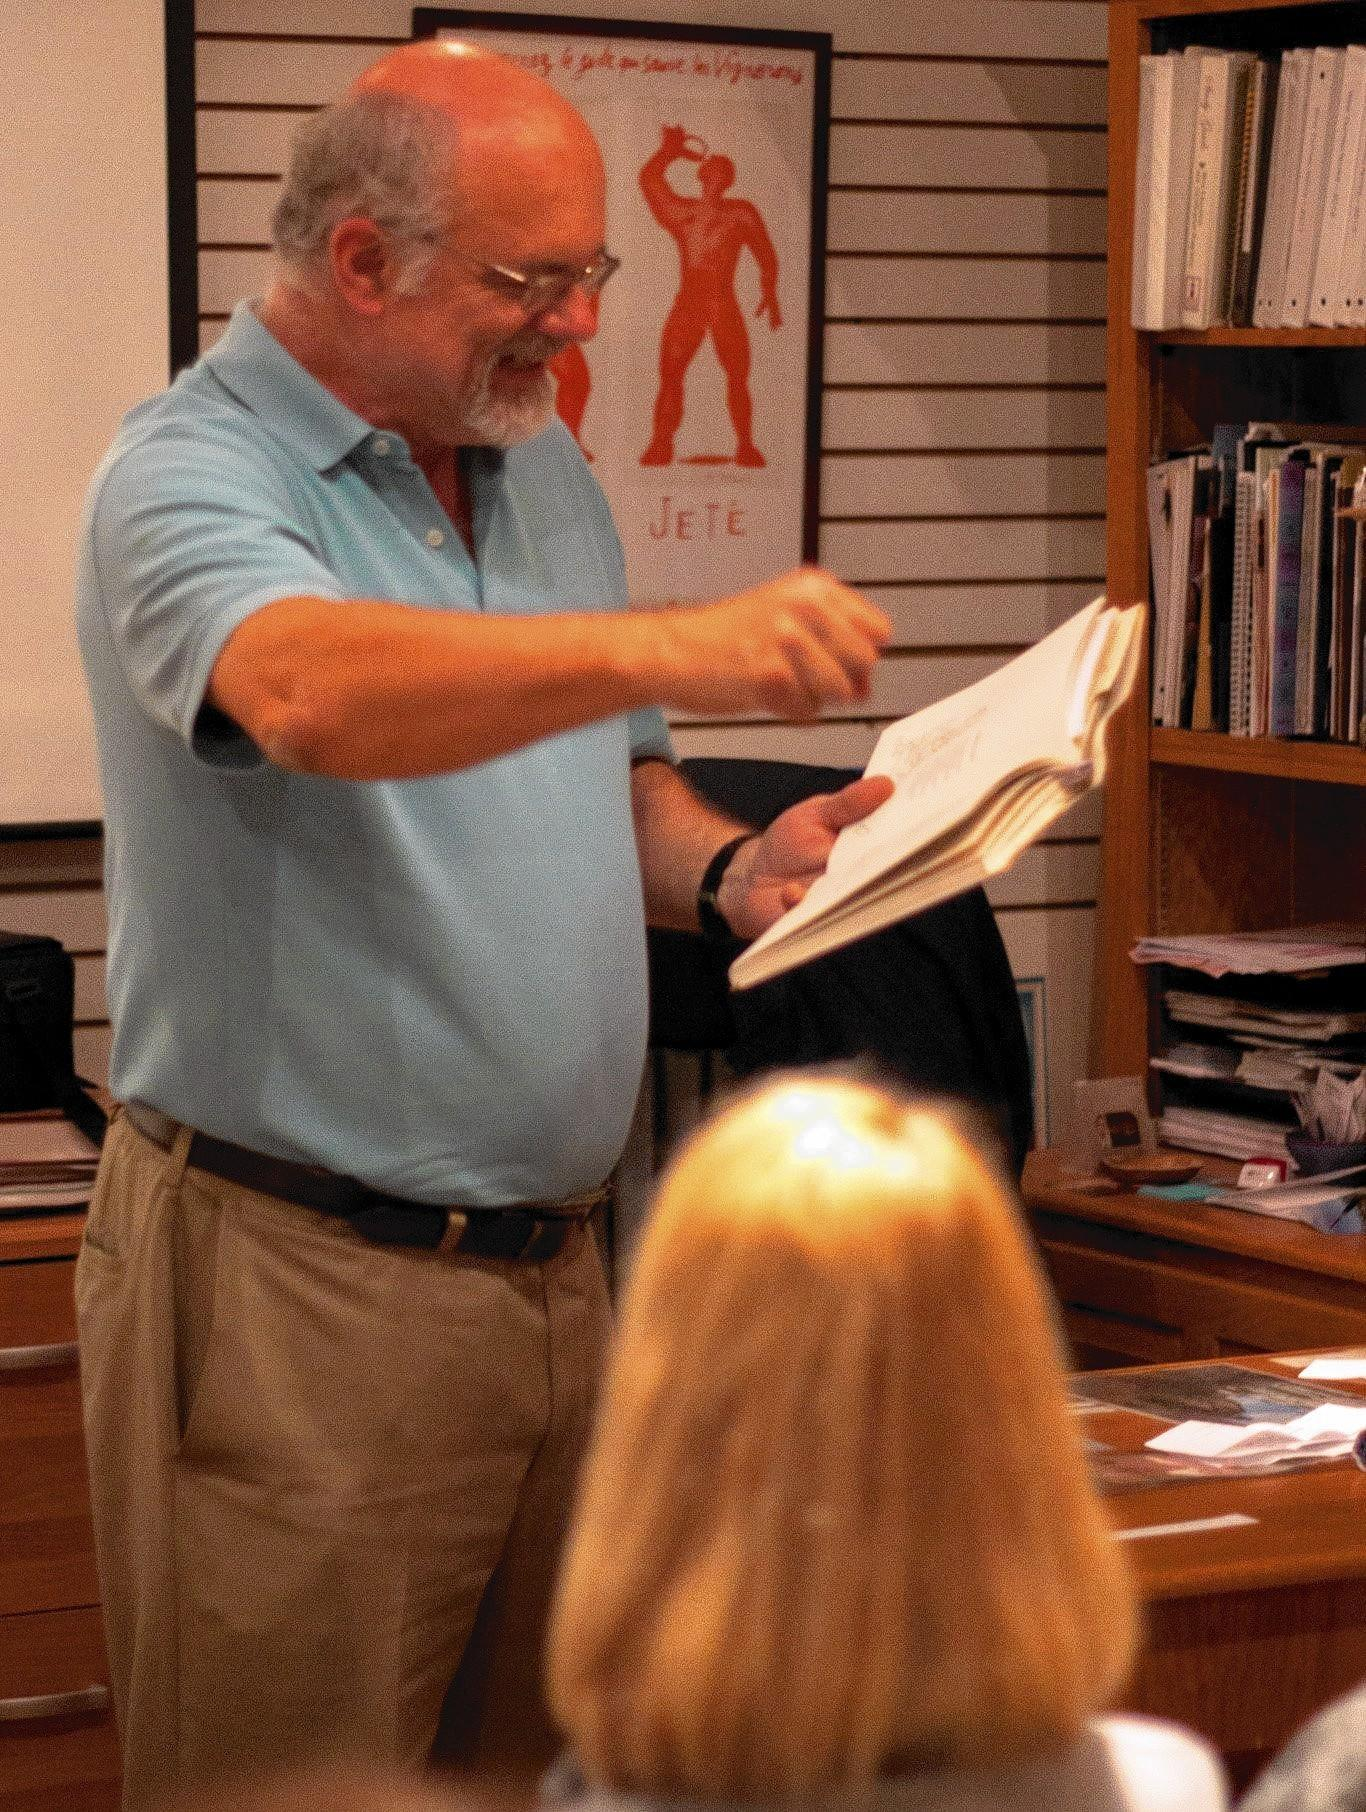 Writer Terry Black of Mission Viejo reads during the last DimeStories event held at the Laguna Culinary Arts. The group is moving to Costa Mesa.